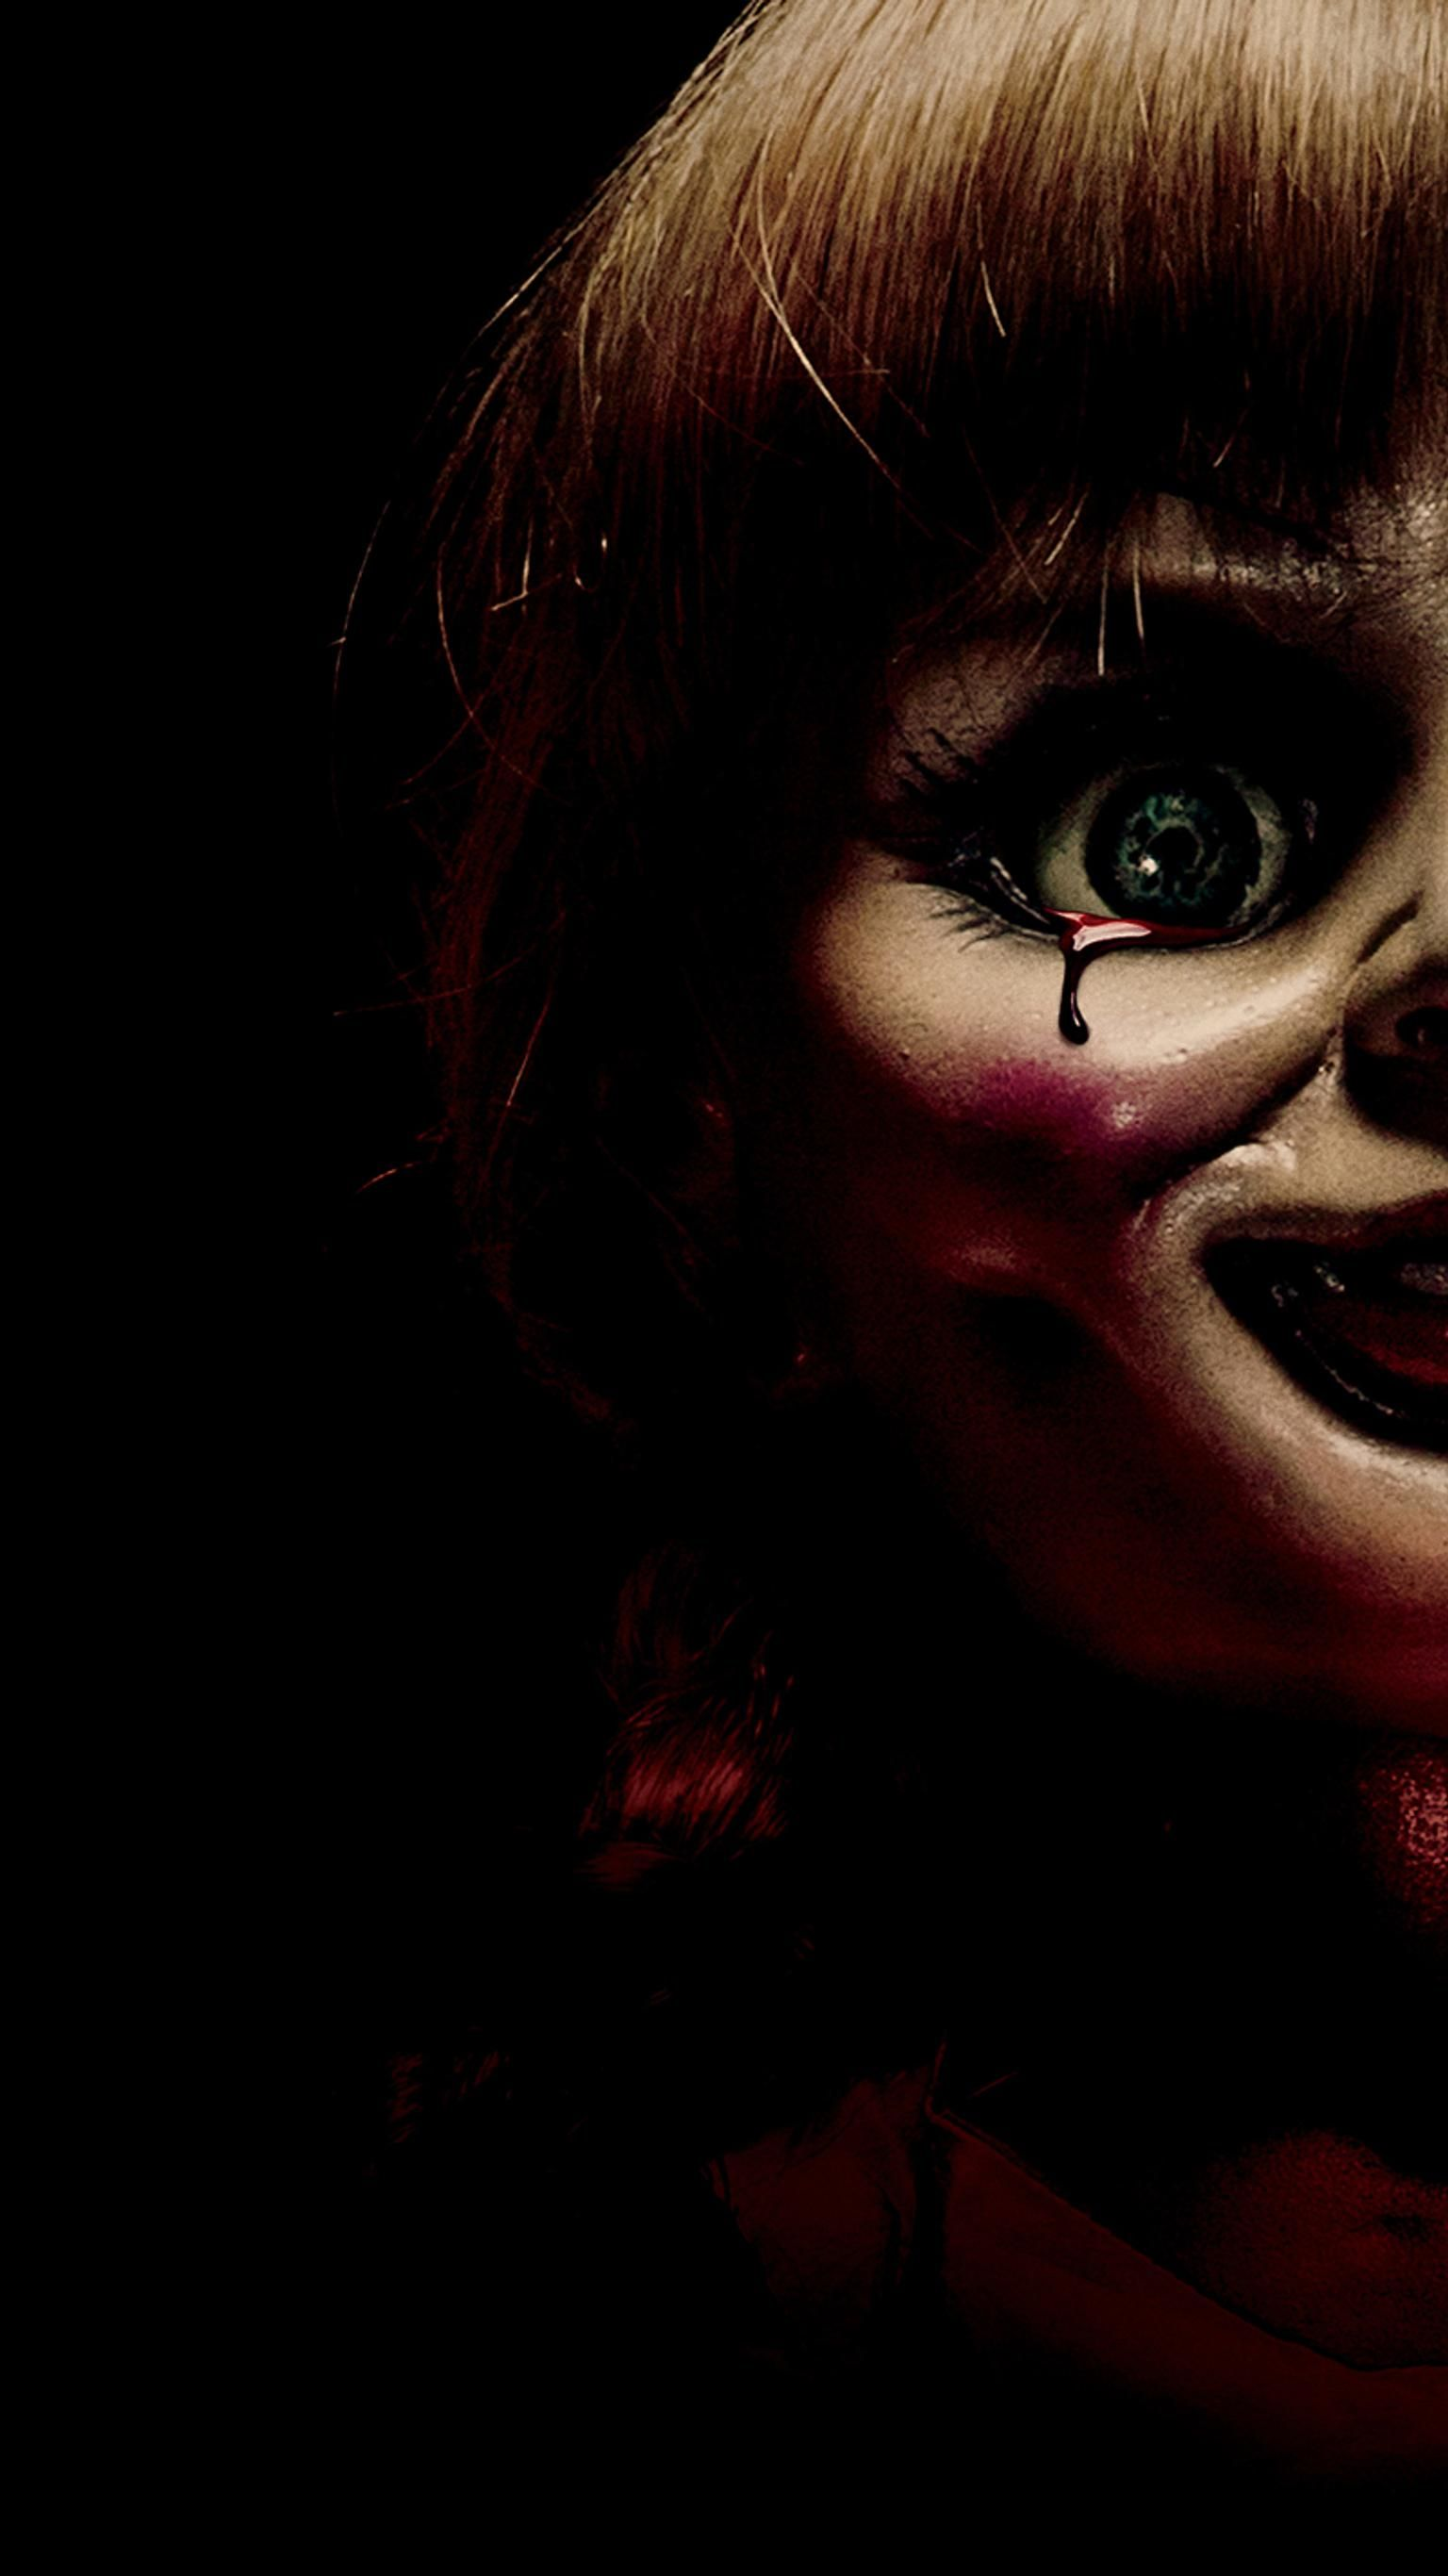 Annabelle 2014 Phone Wallpaper Moviemania Horror Movie Posters Horror Artwork Halloween Wallpaper Iphone